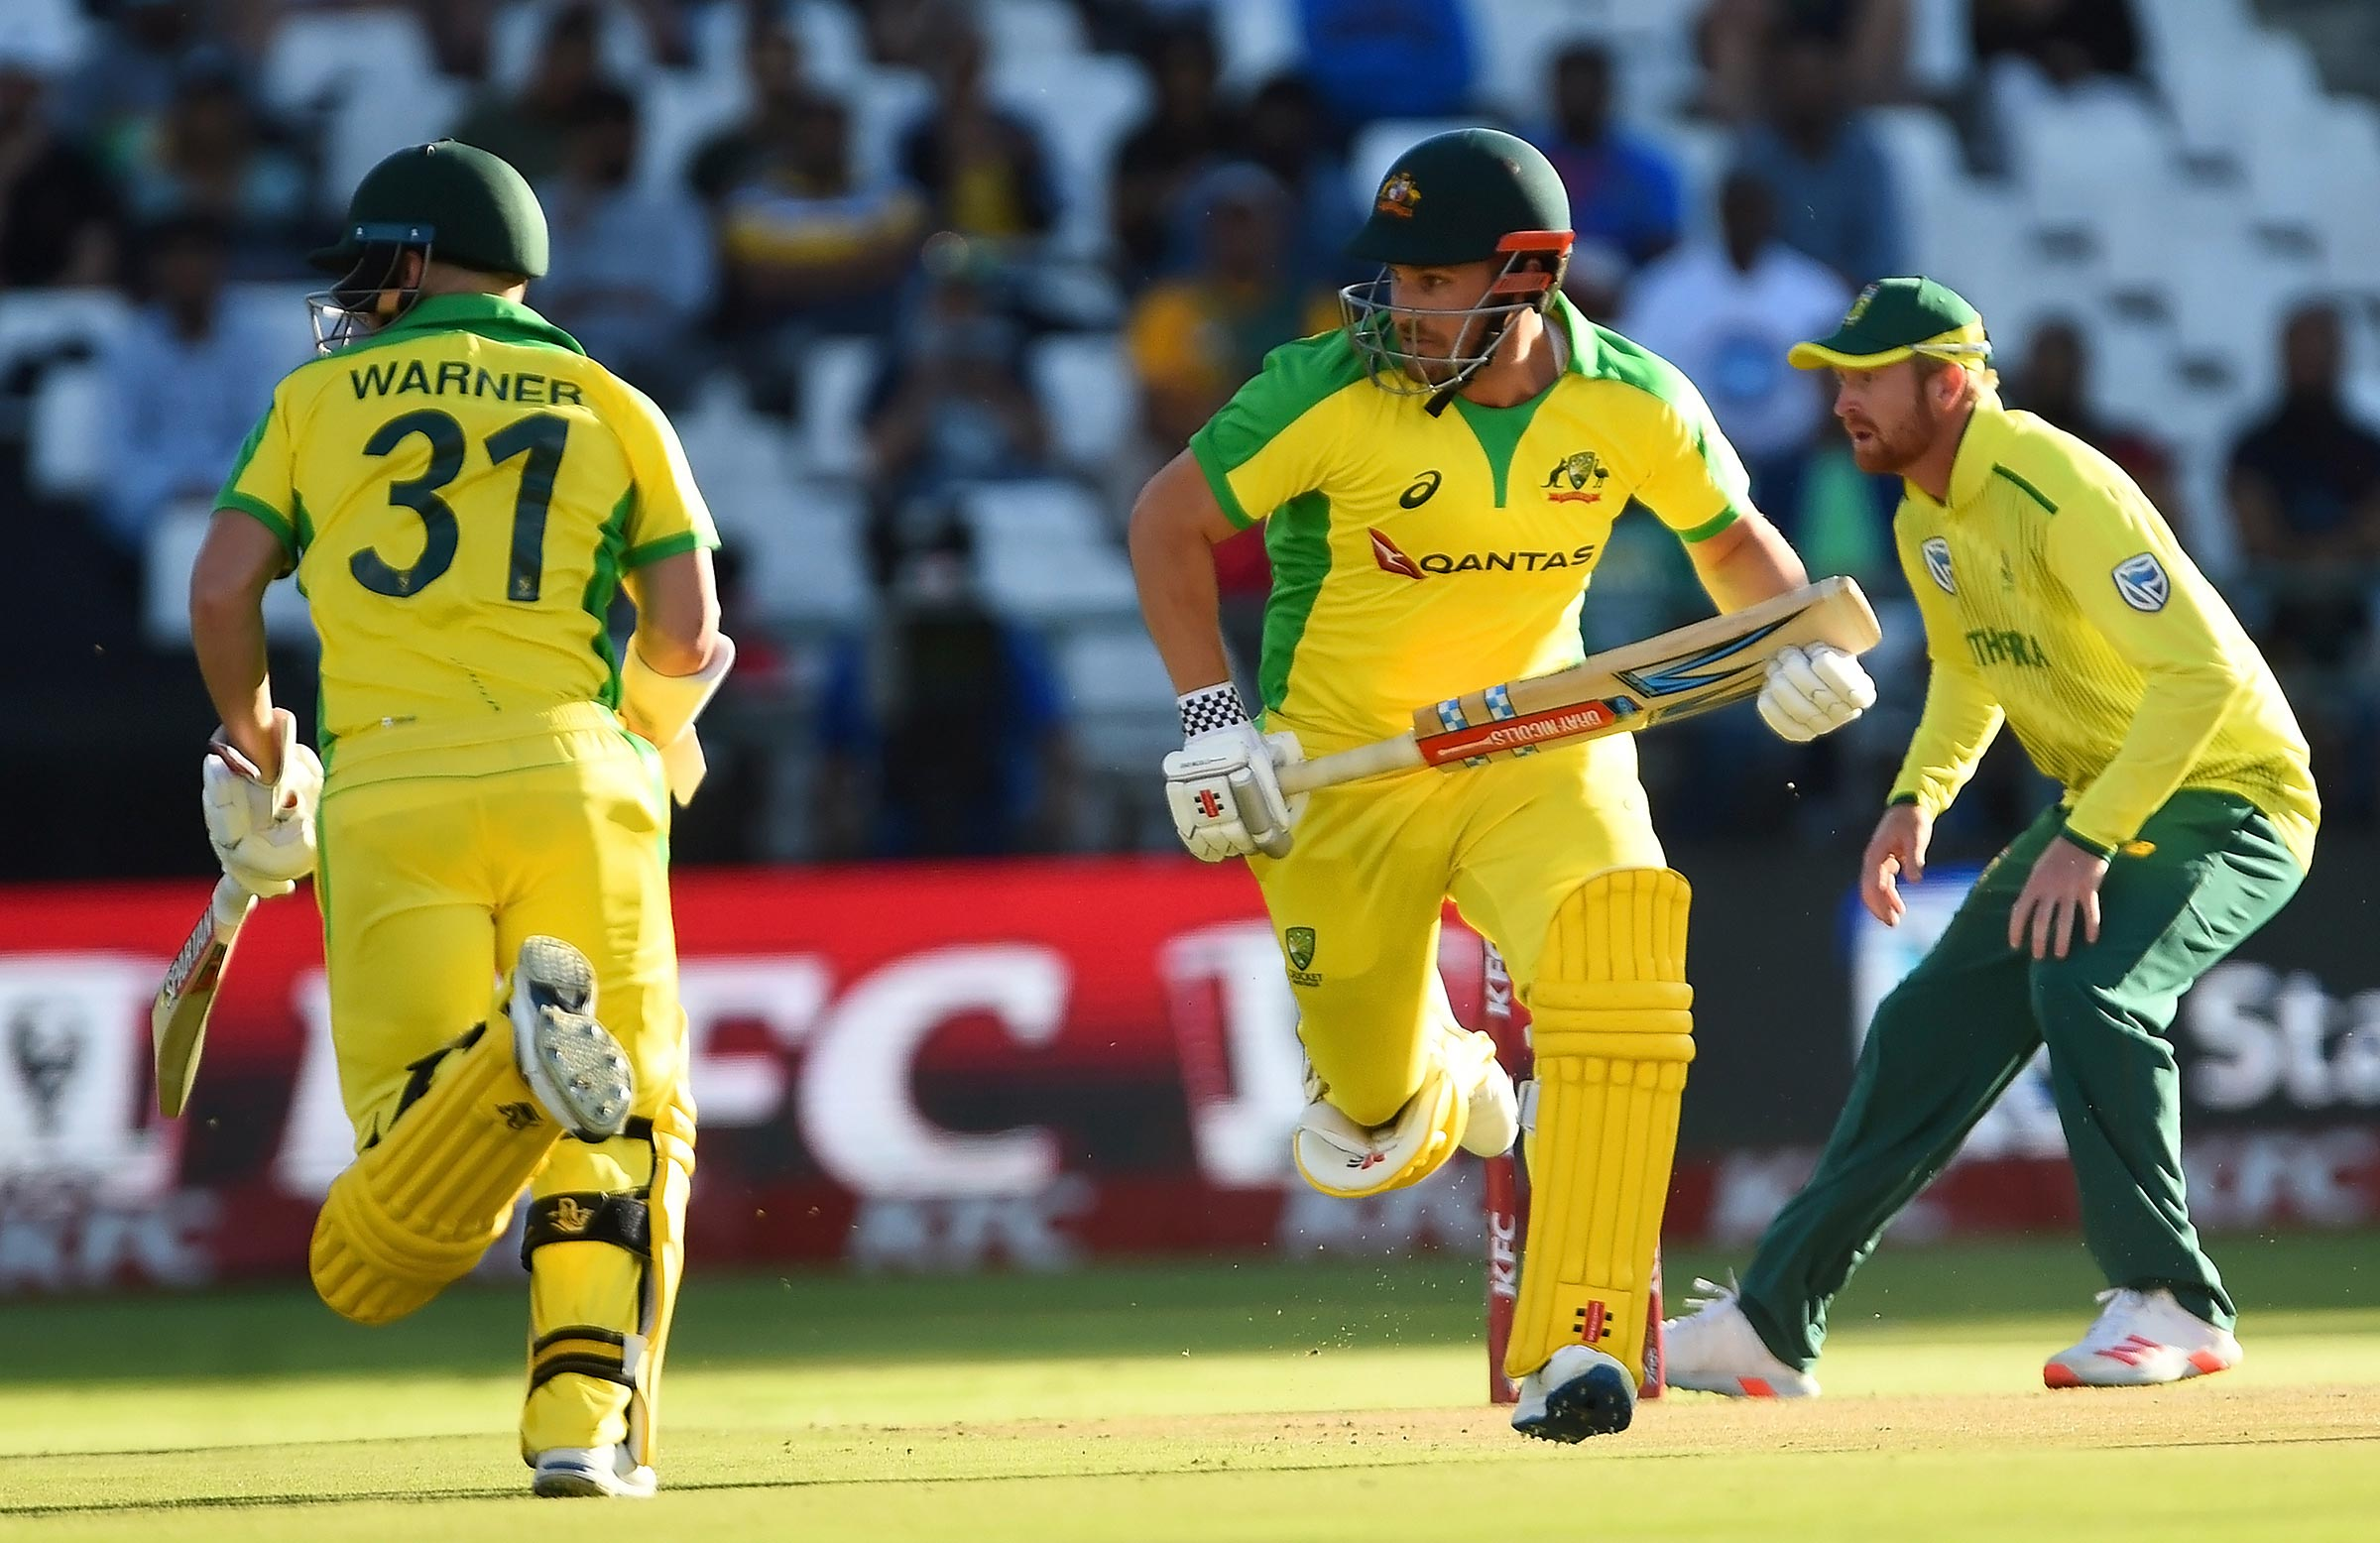 Warner and Finch now have three century stands together in T20 cricket // AAP